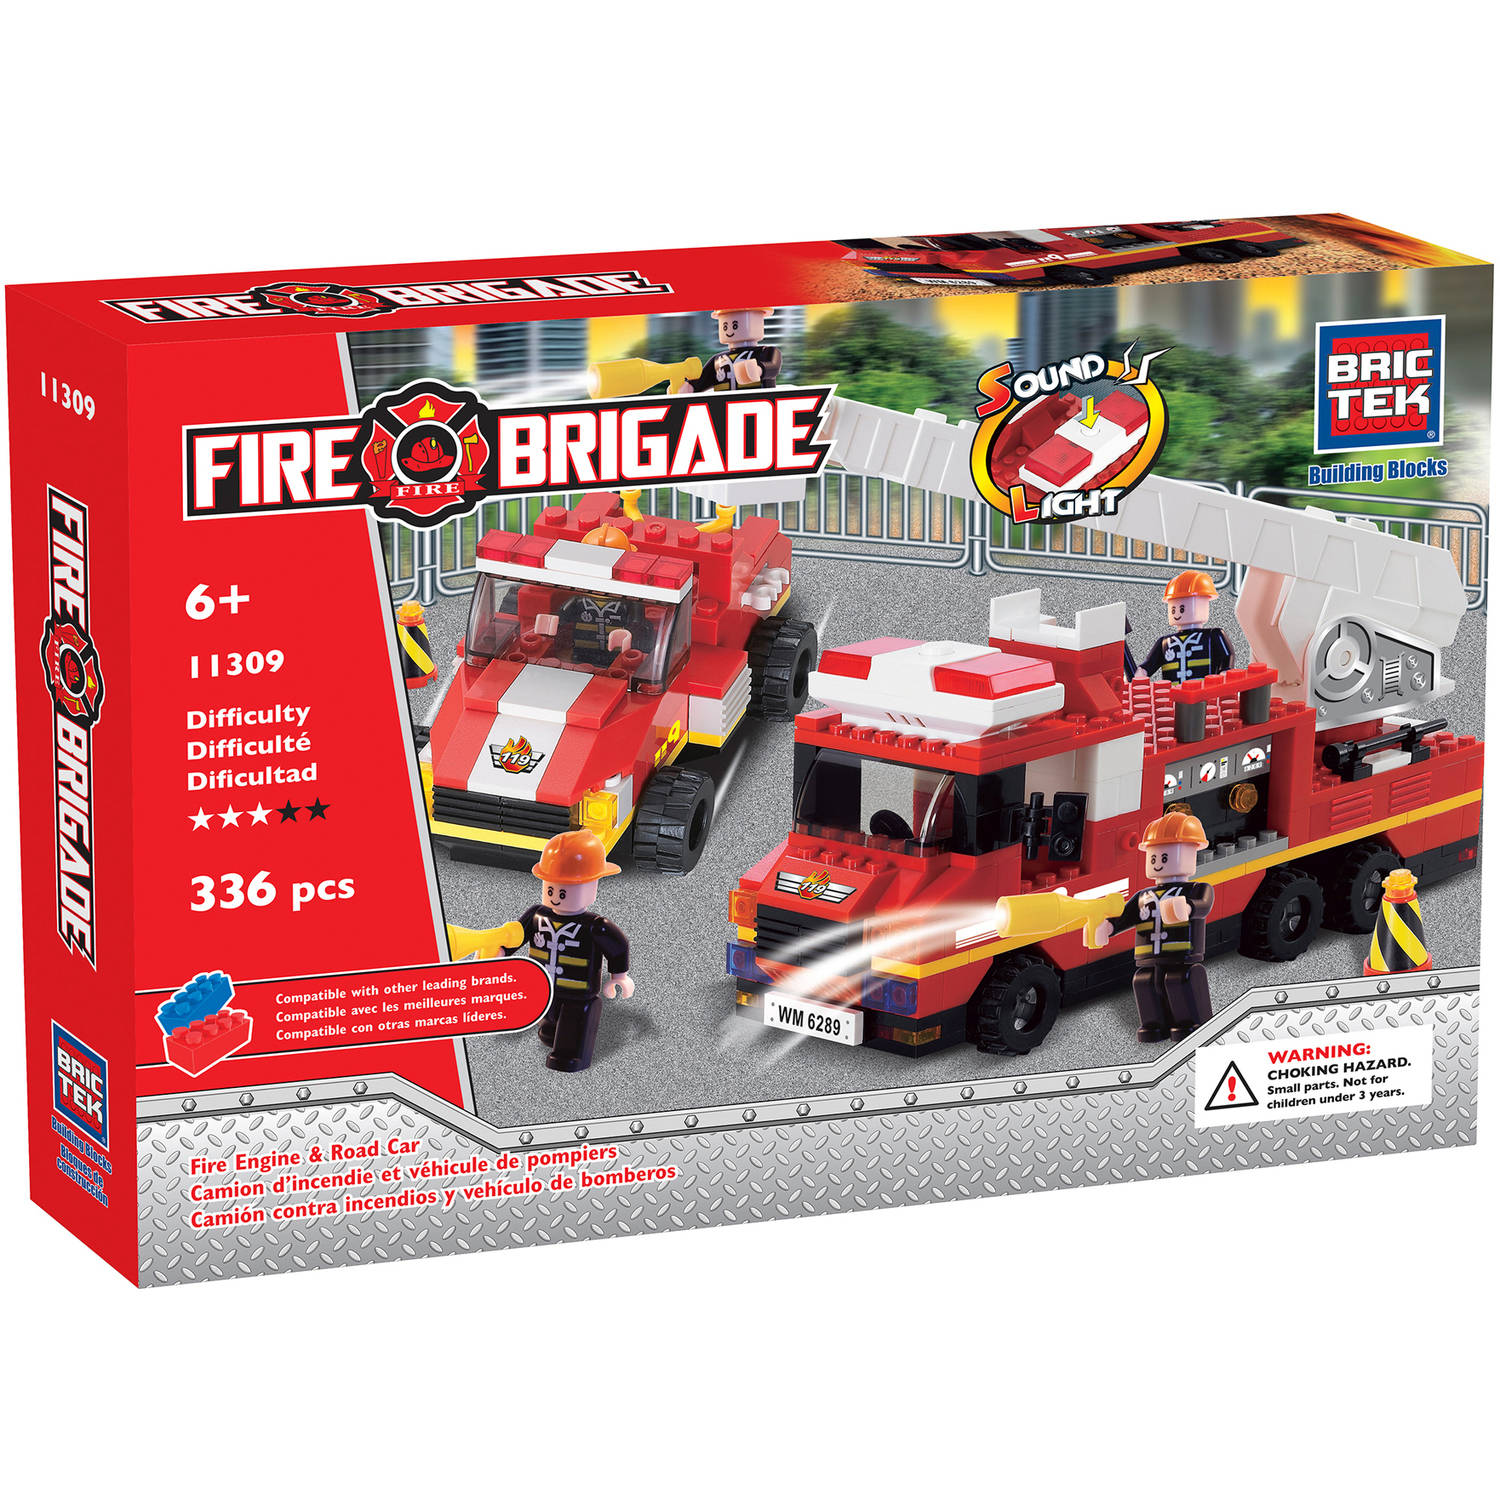 Brictek Fire Engine with Road Car